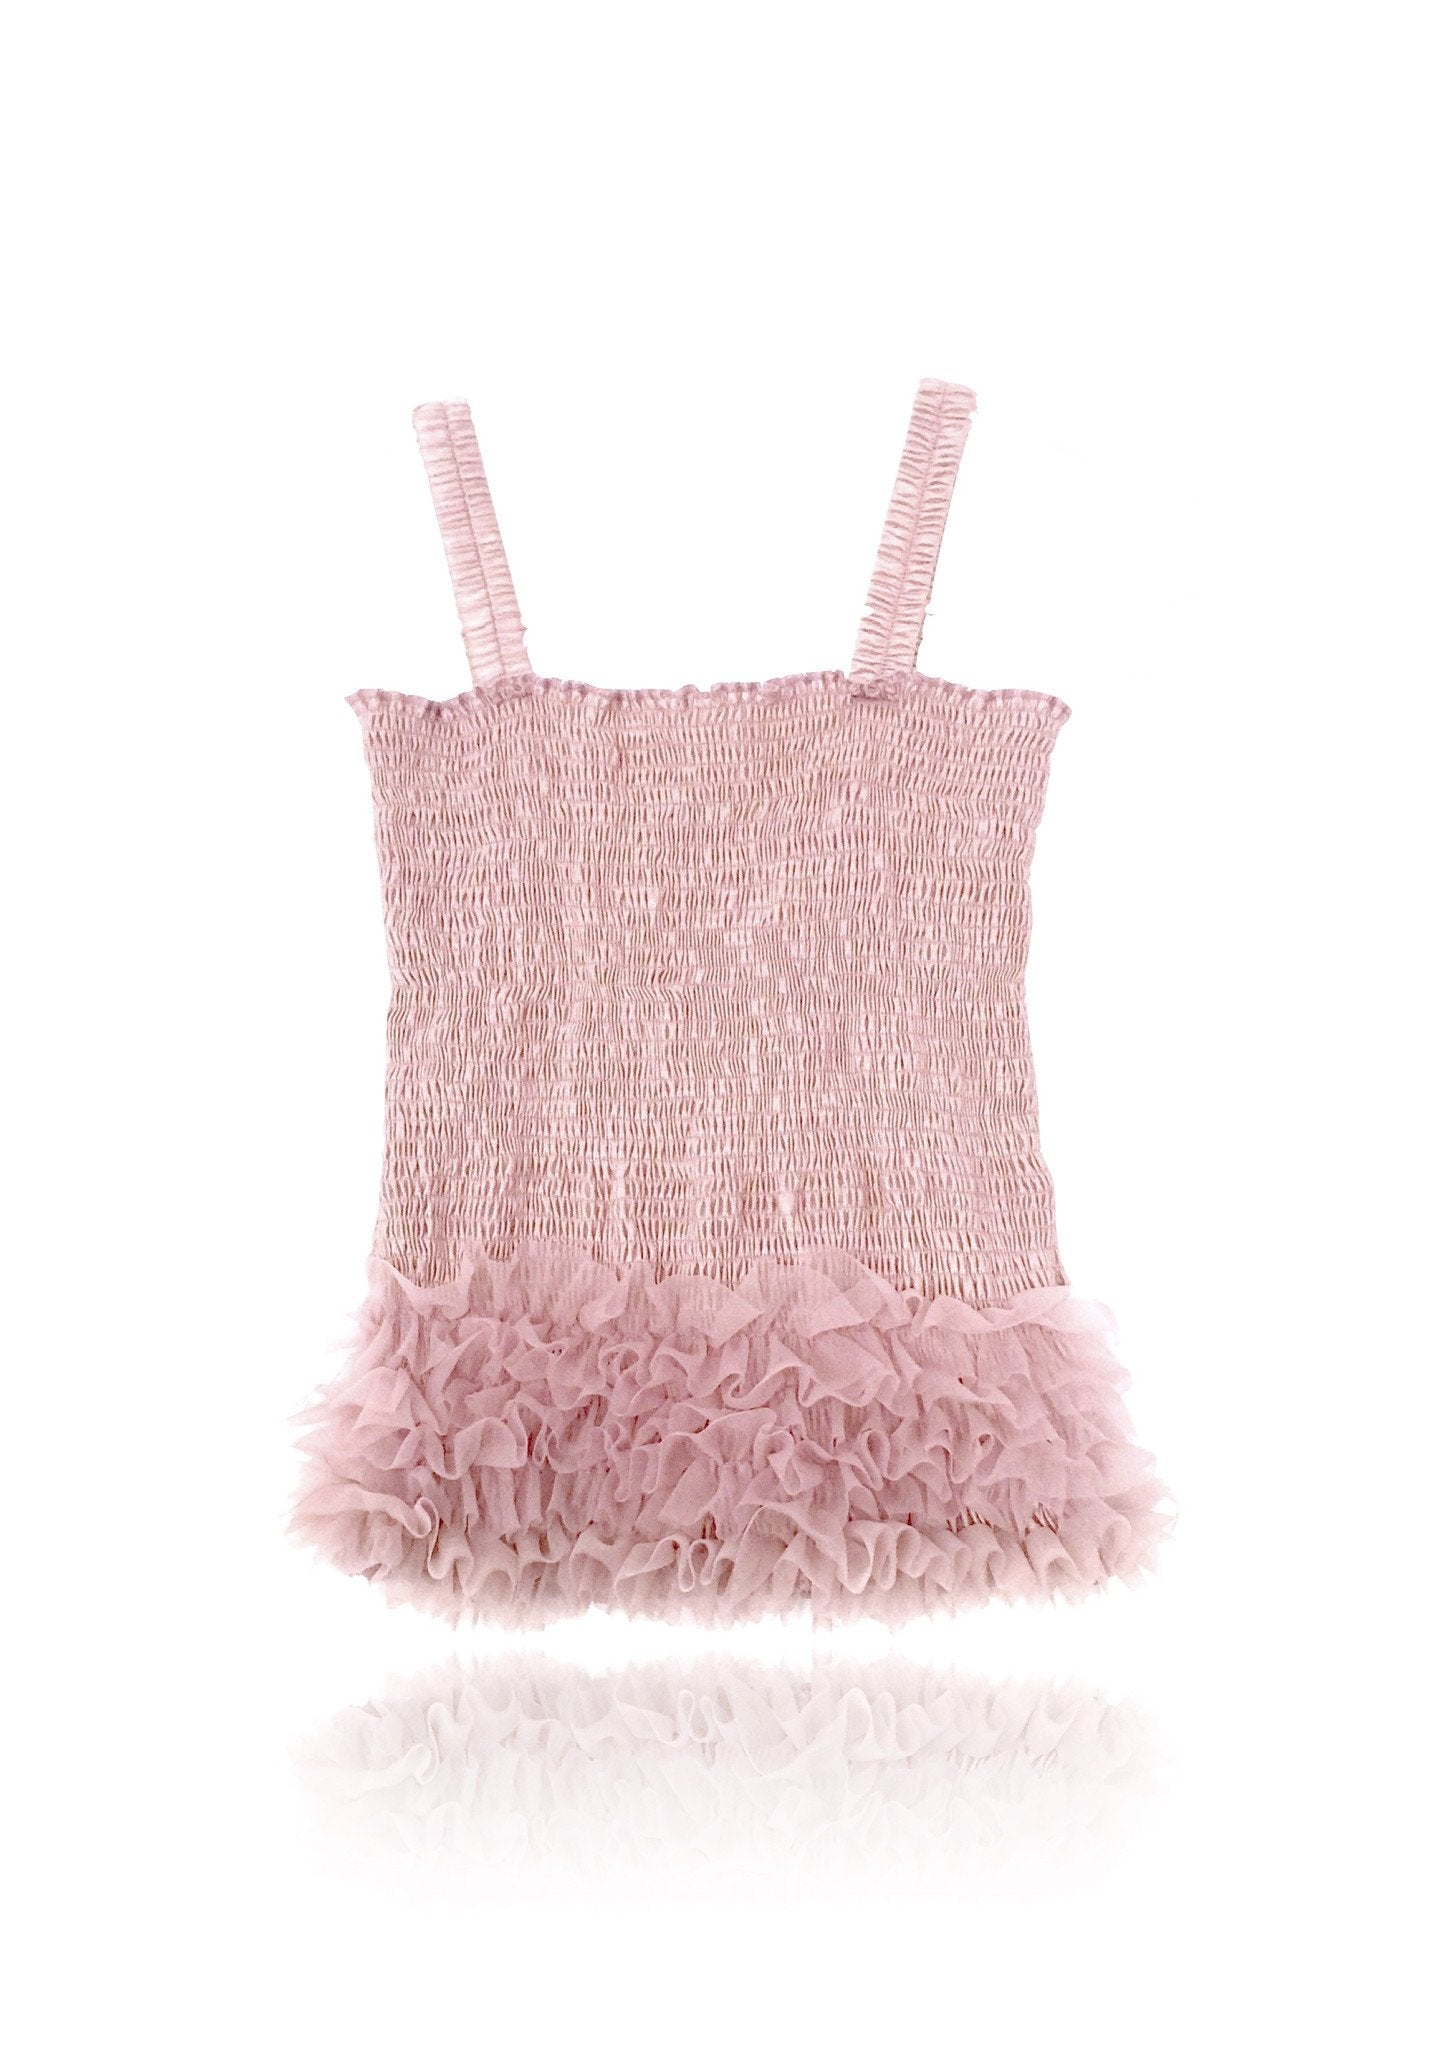 DOLLY by Le Petit Tom ® FRILLY TOP rose pink - DOLLY by Le Petit Tom ®